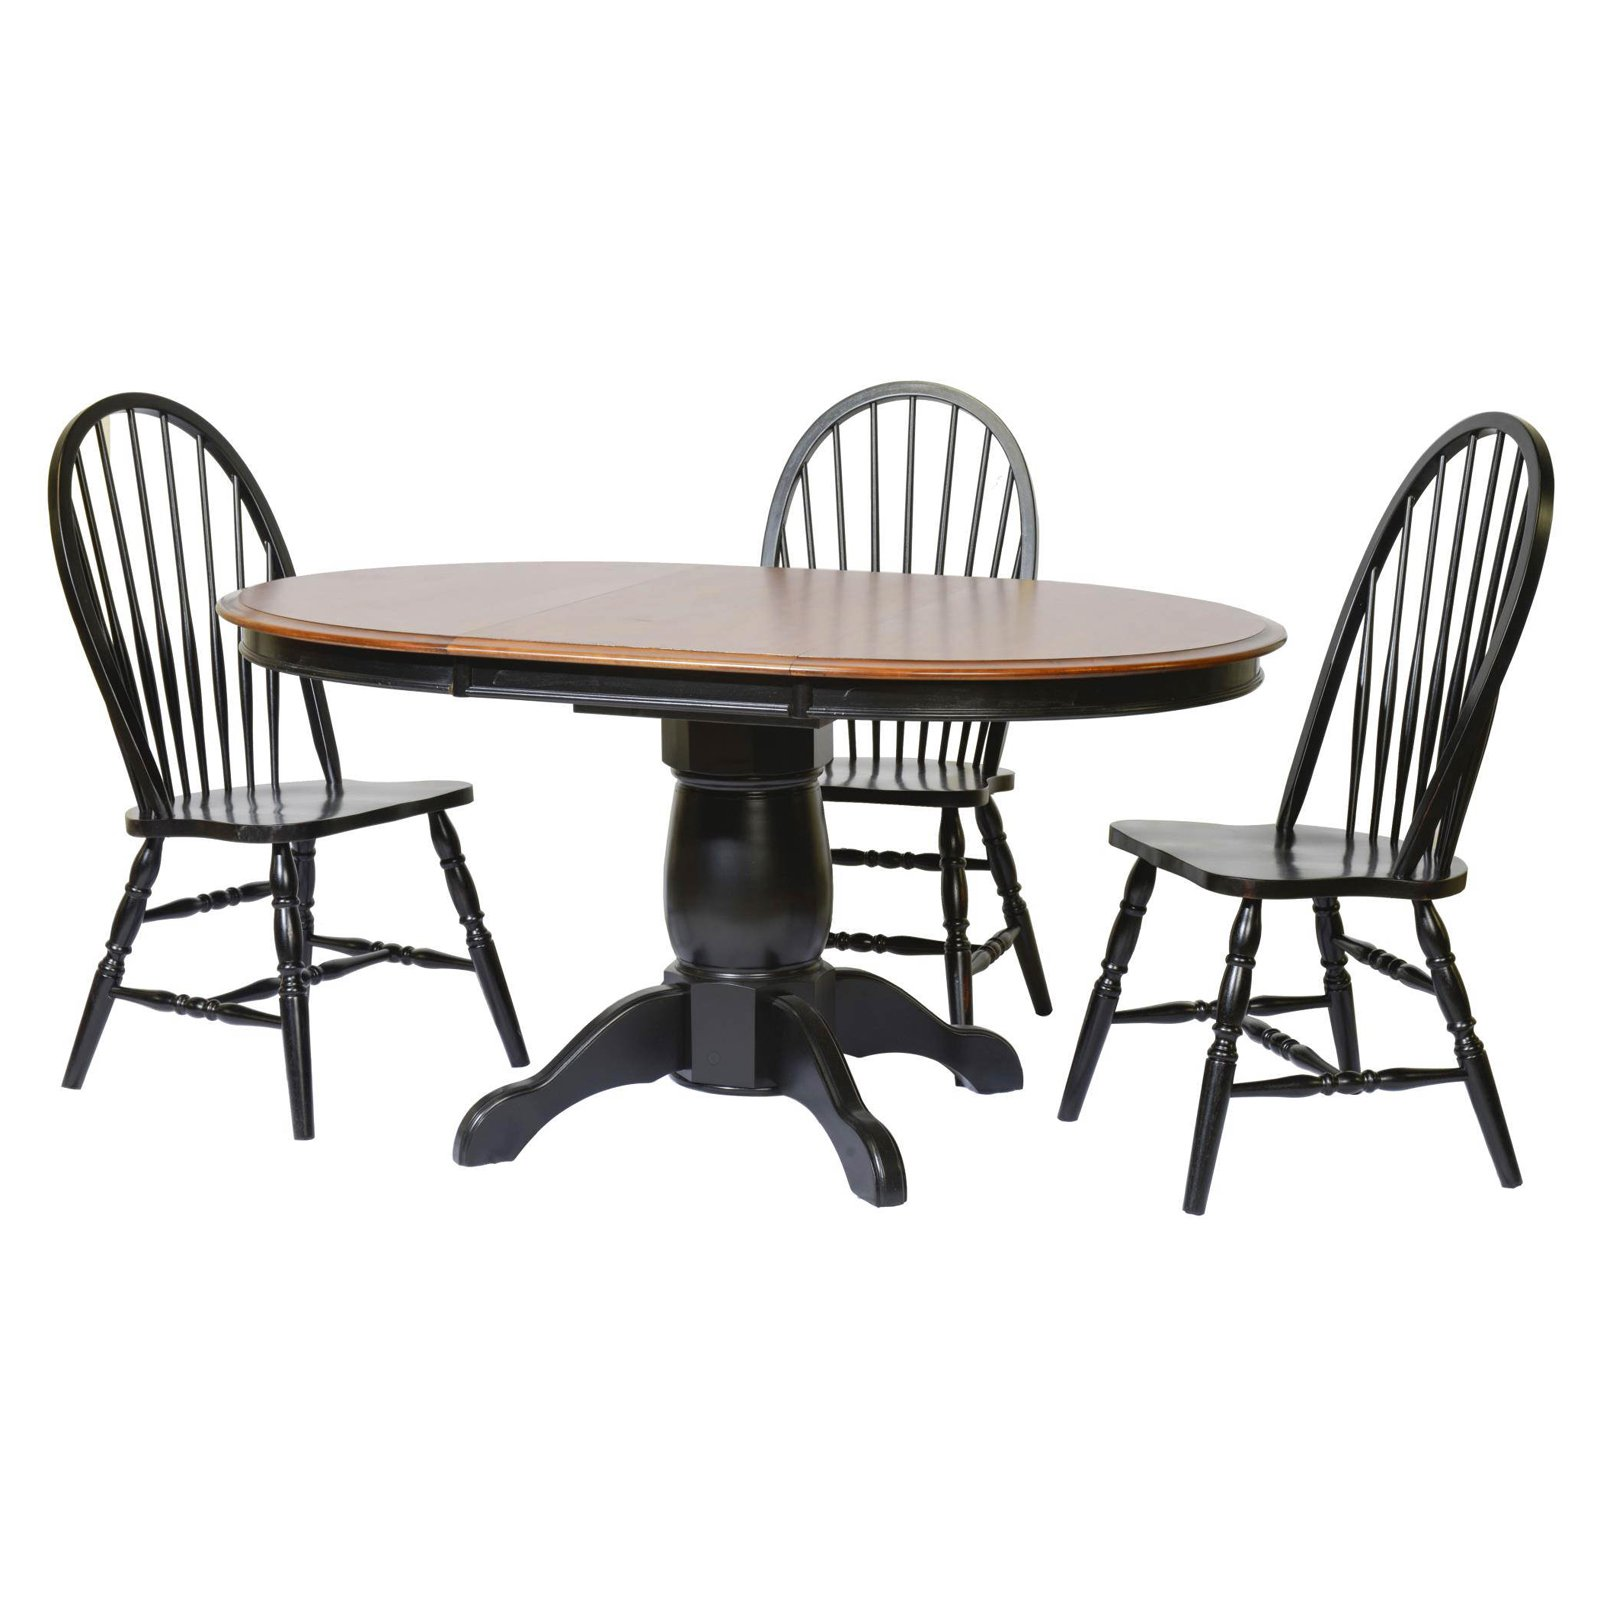 Chelsea Home Tory Pedestal Dining Table by Chelsea Home Furniture LLC.